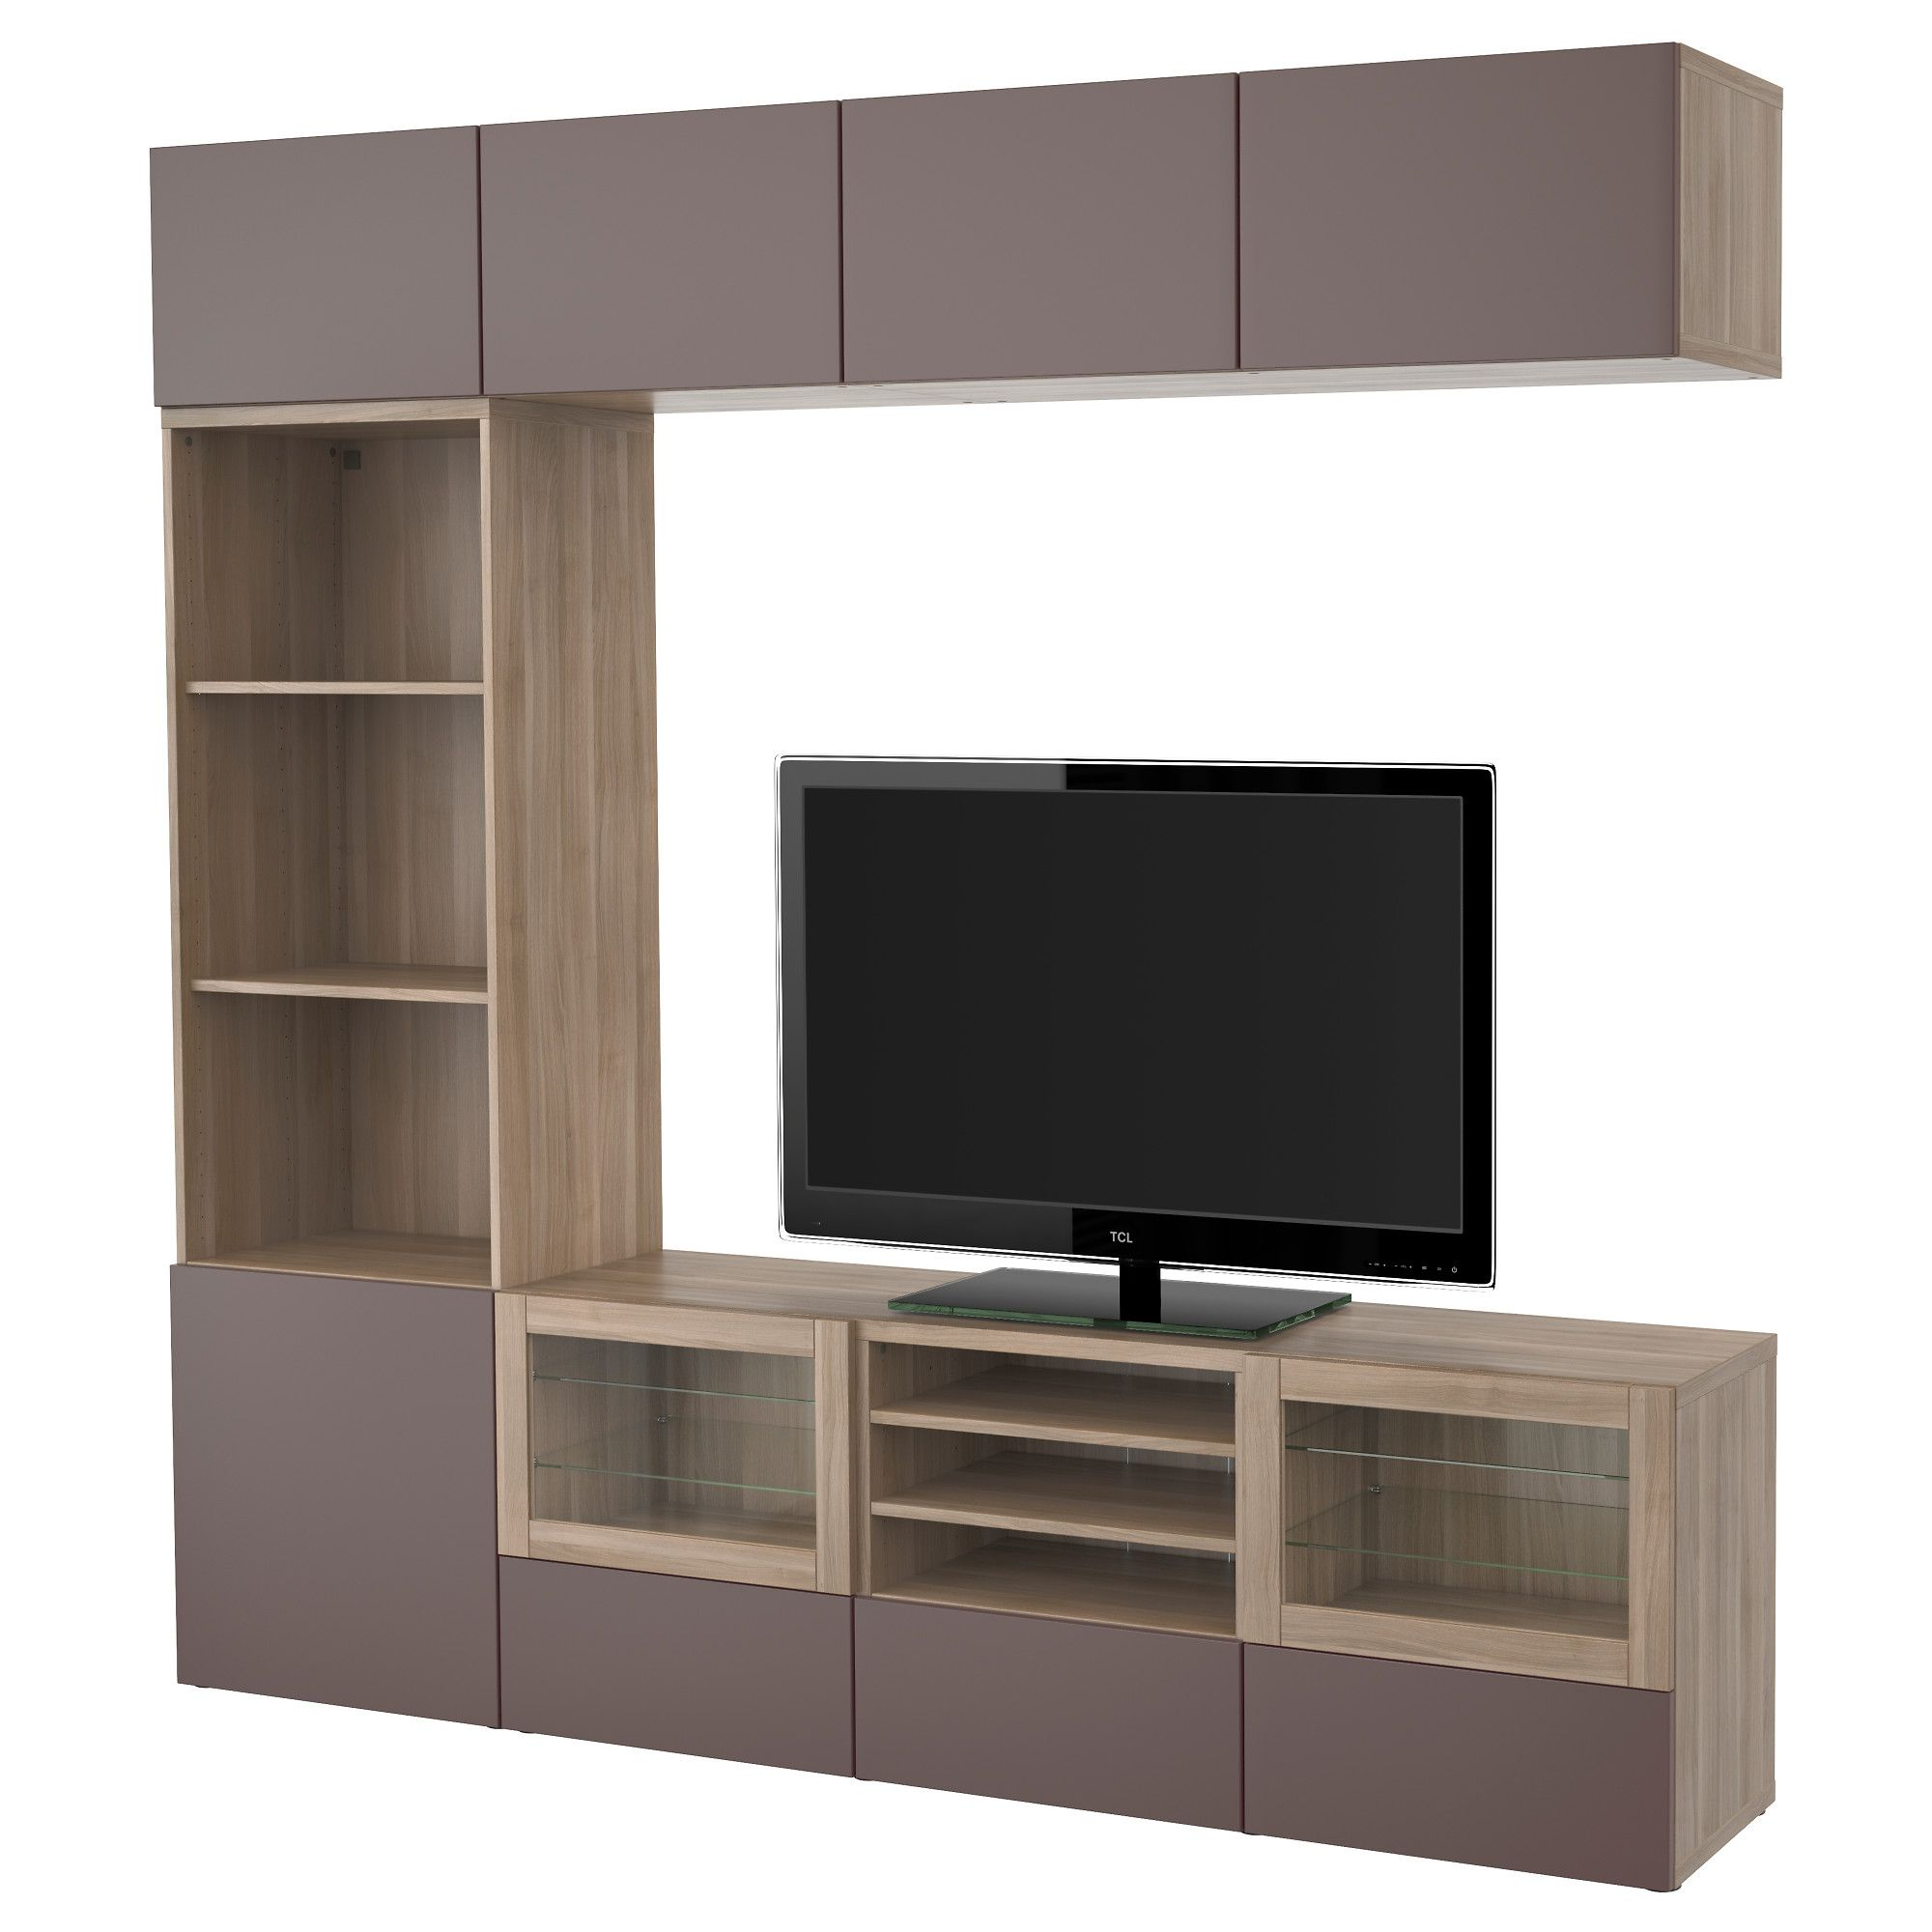 Furniture And Home Furnishings In 2019 Products Tv